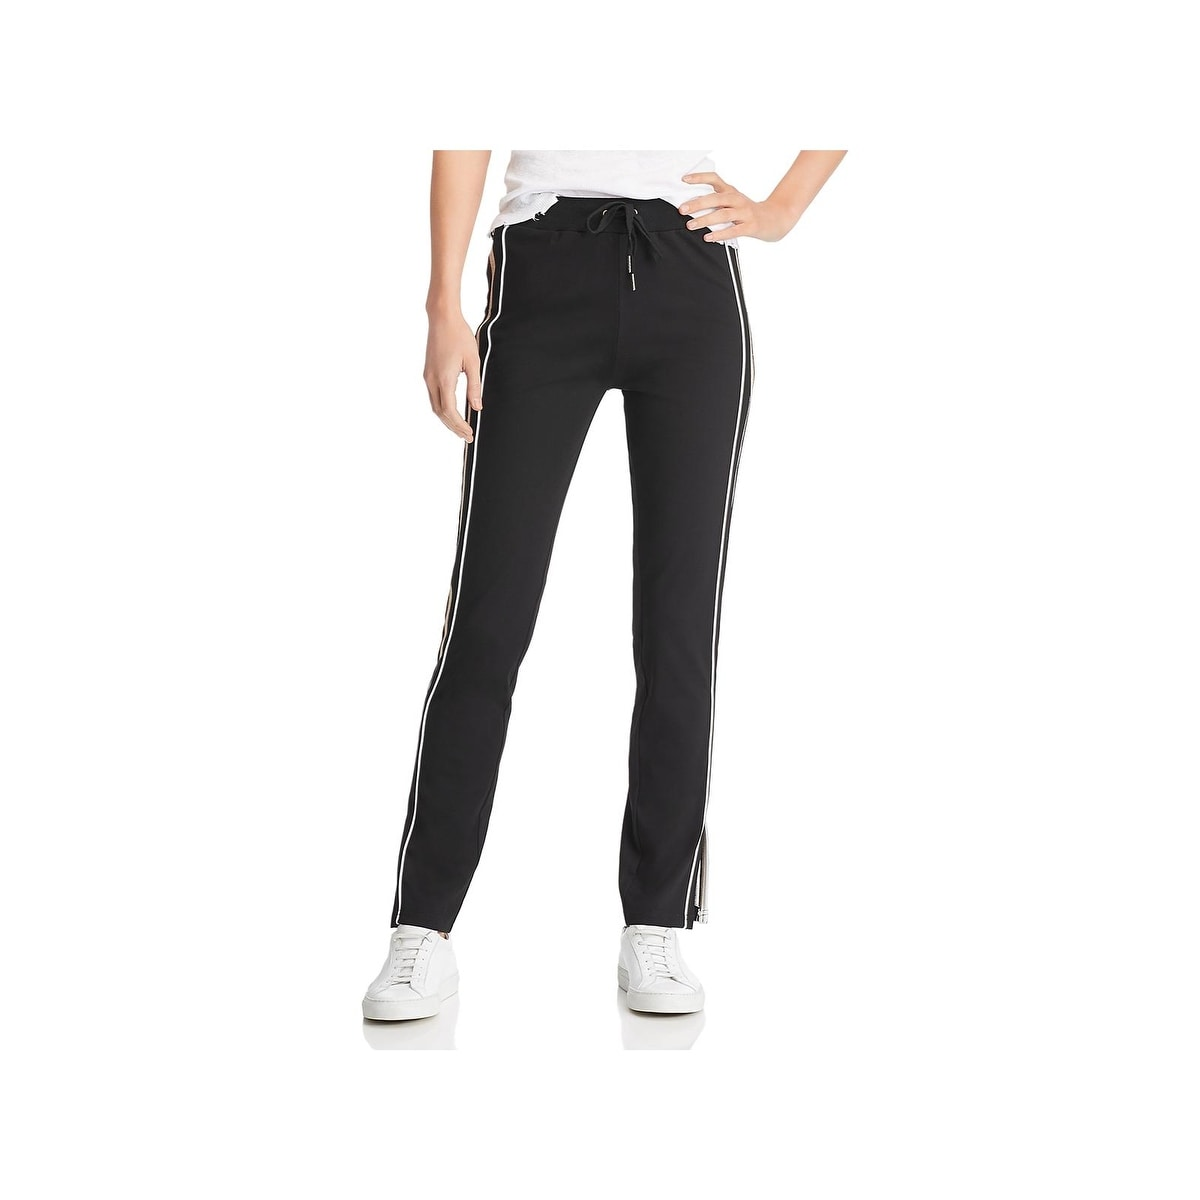 Aeropostale Womens Bootcut Athletic Track Pants